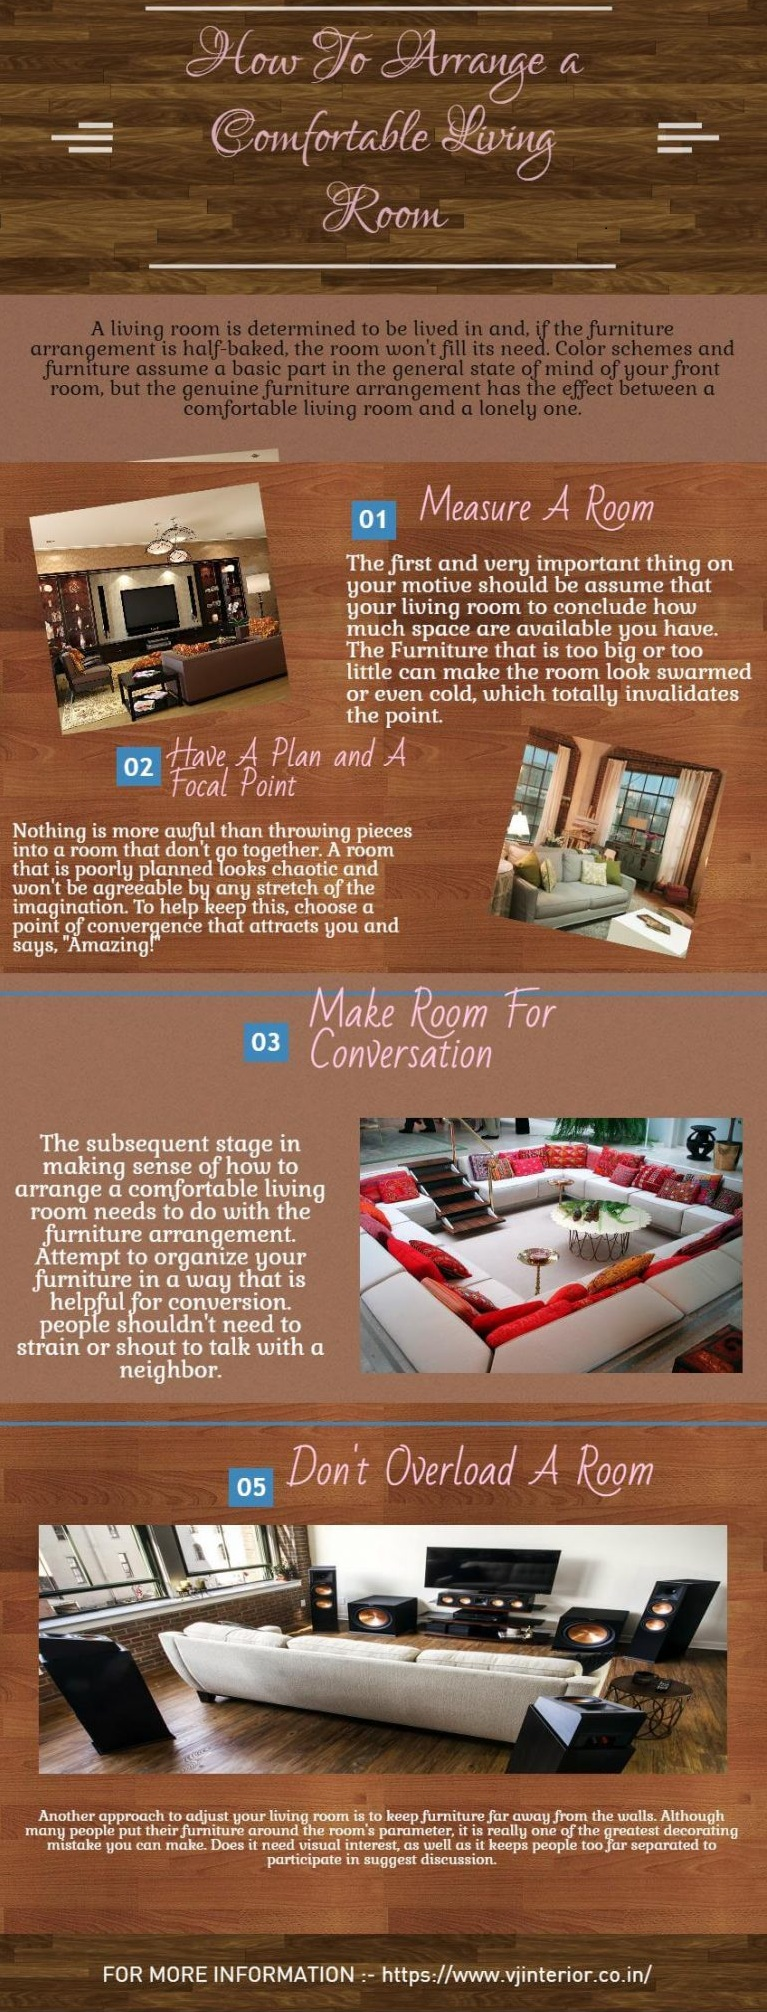 How to arrange living room furniture in a comfortable